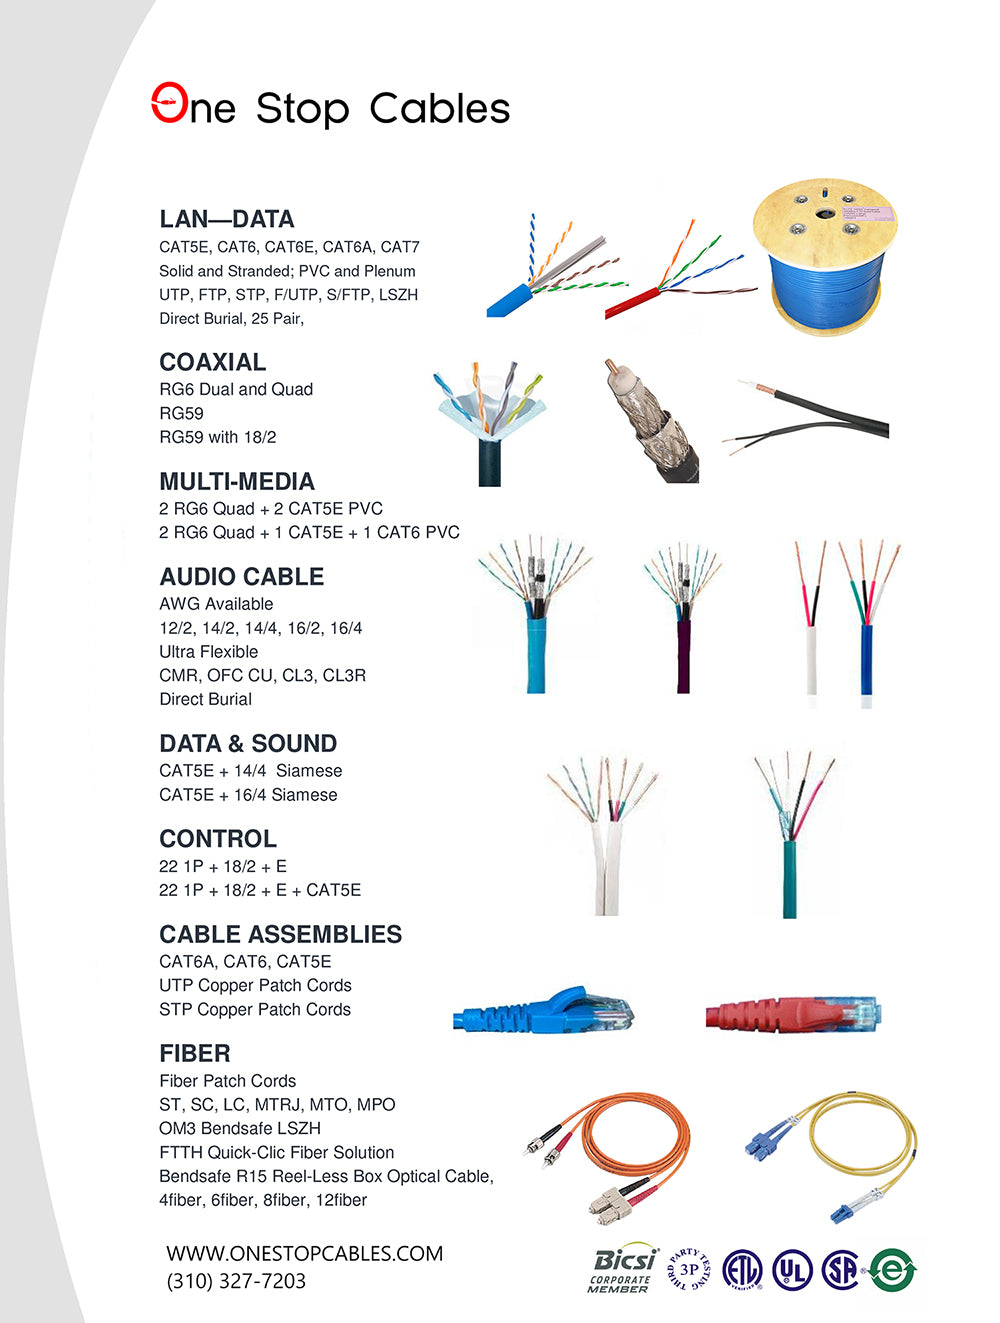 One Stop Cables Line Card